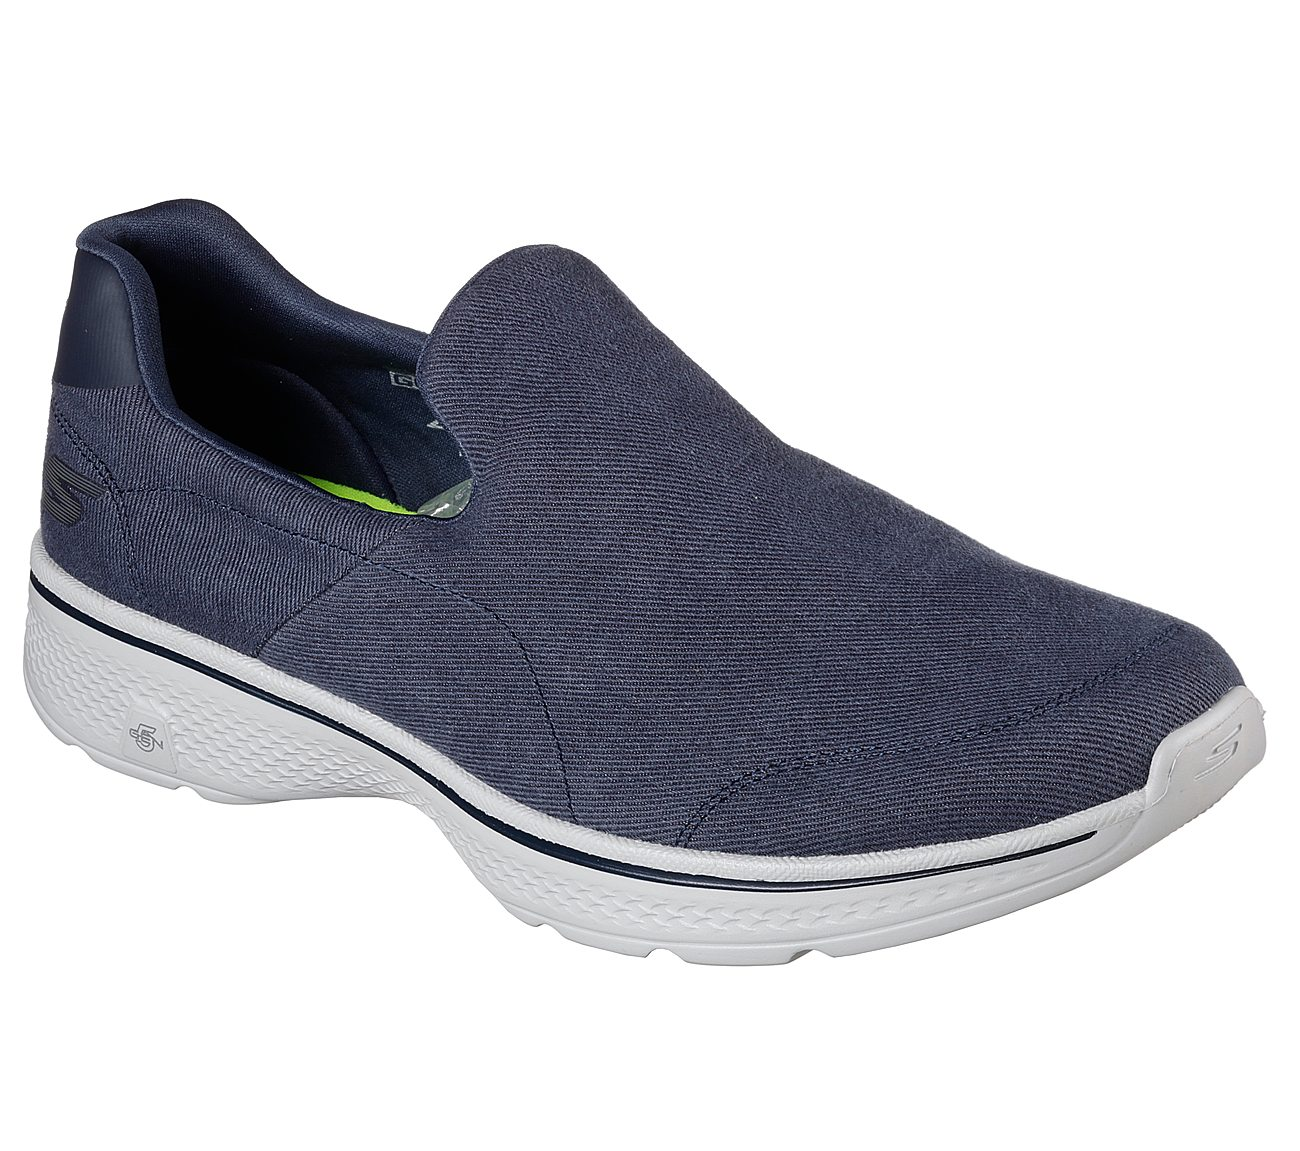 skechers go walk canvas slip on shoes